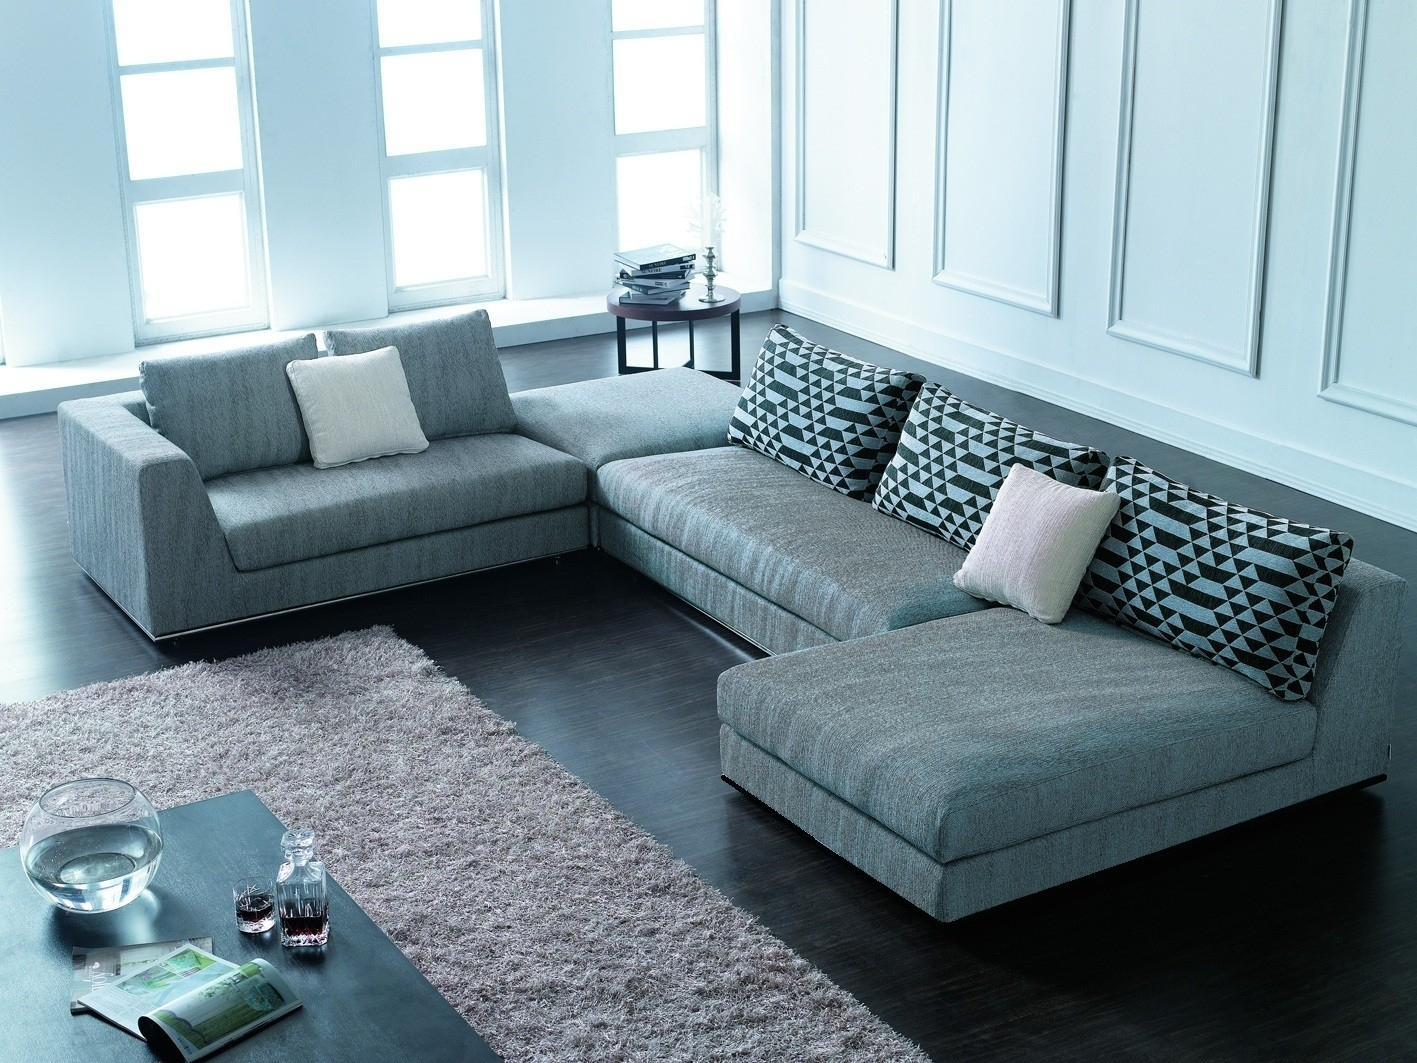 Most Comfortable Sectional Couches — Cabinets, Beds, Sofas And within Contemporary Sectional Sofas (Image 11 of 15)